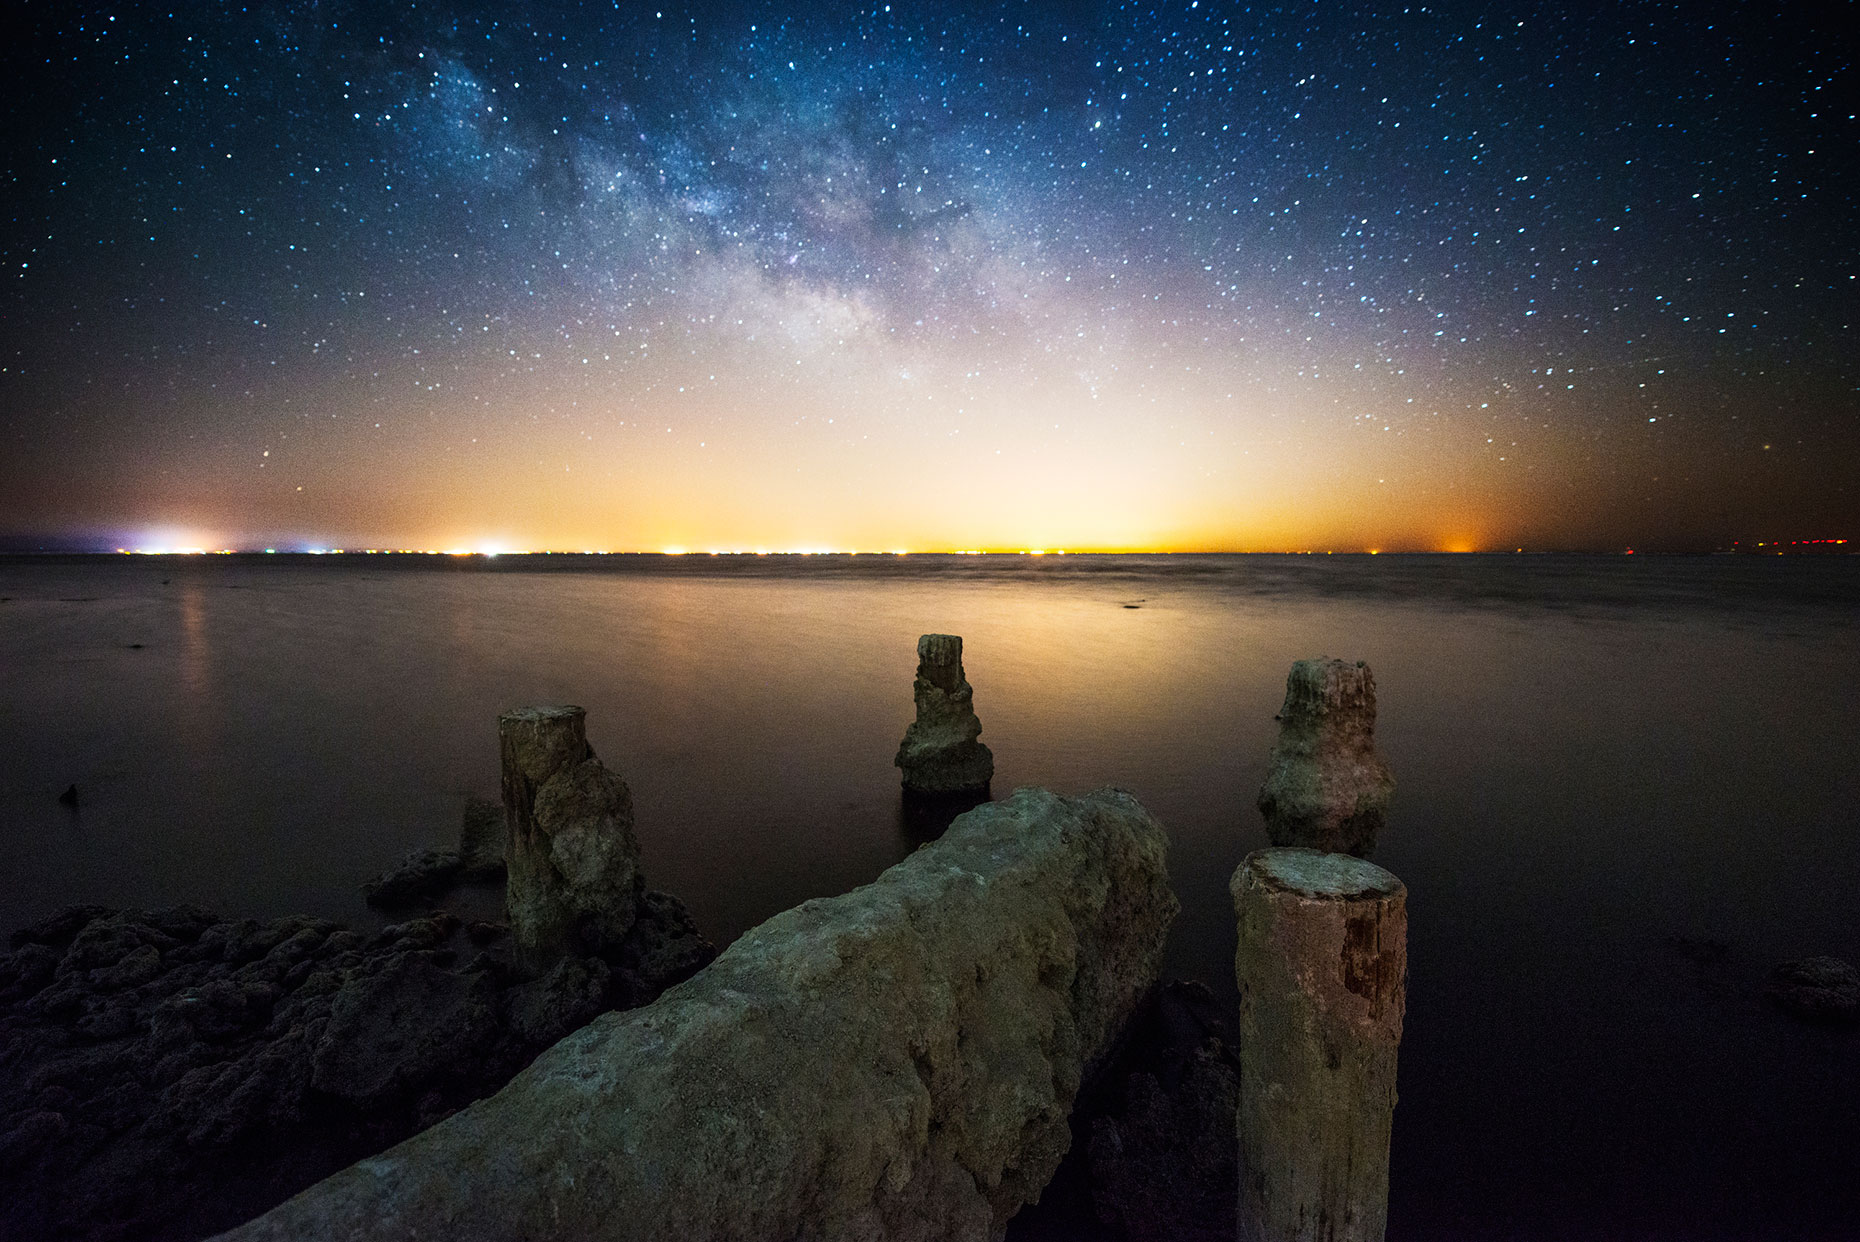 Night Sky - Salton Sea Pier Under The Stars, California